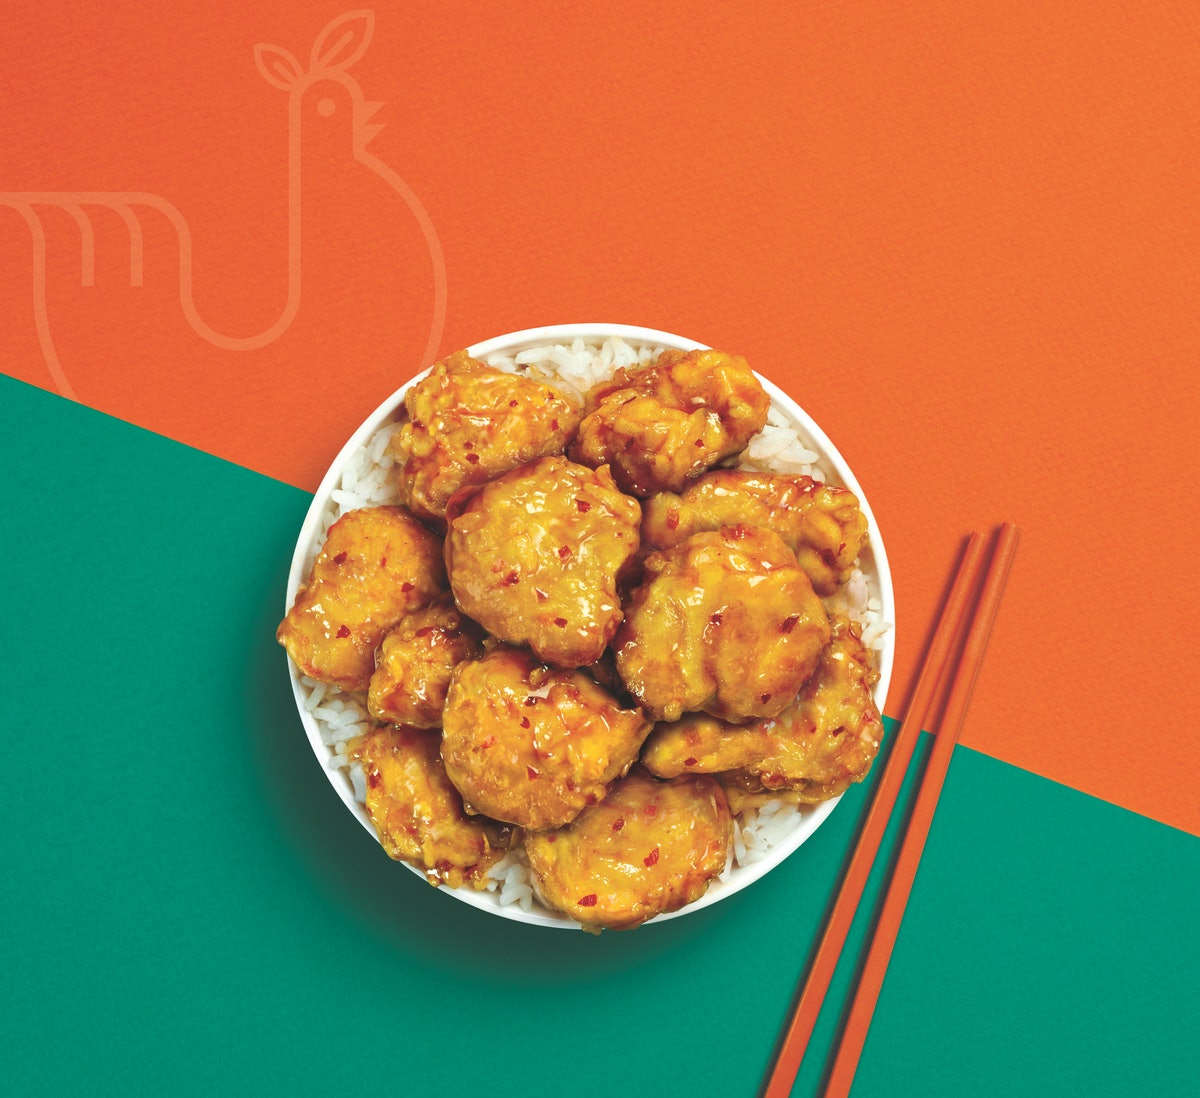 Here's where to get Panda Express new Beyond Orange Chicken once it hits restaurants.